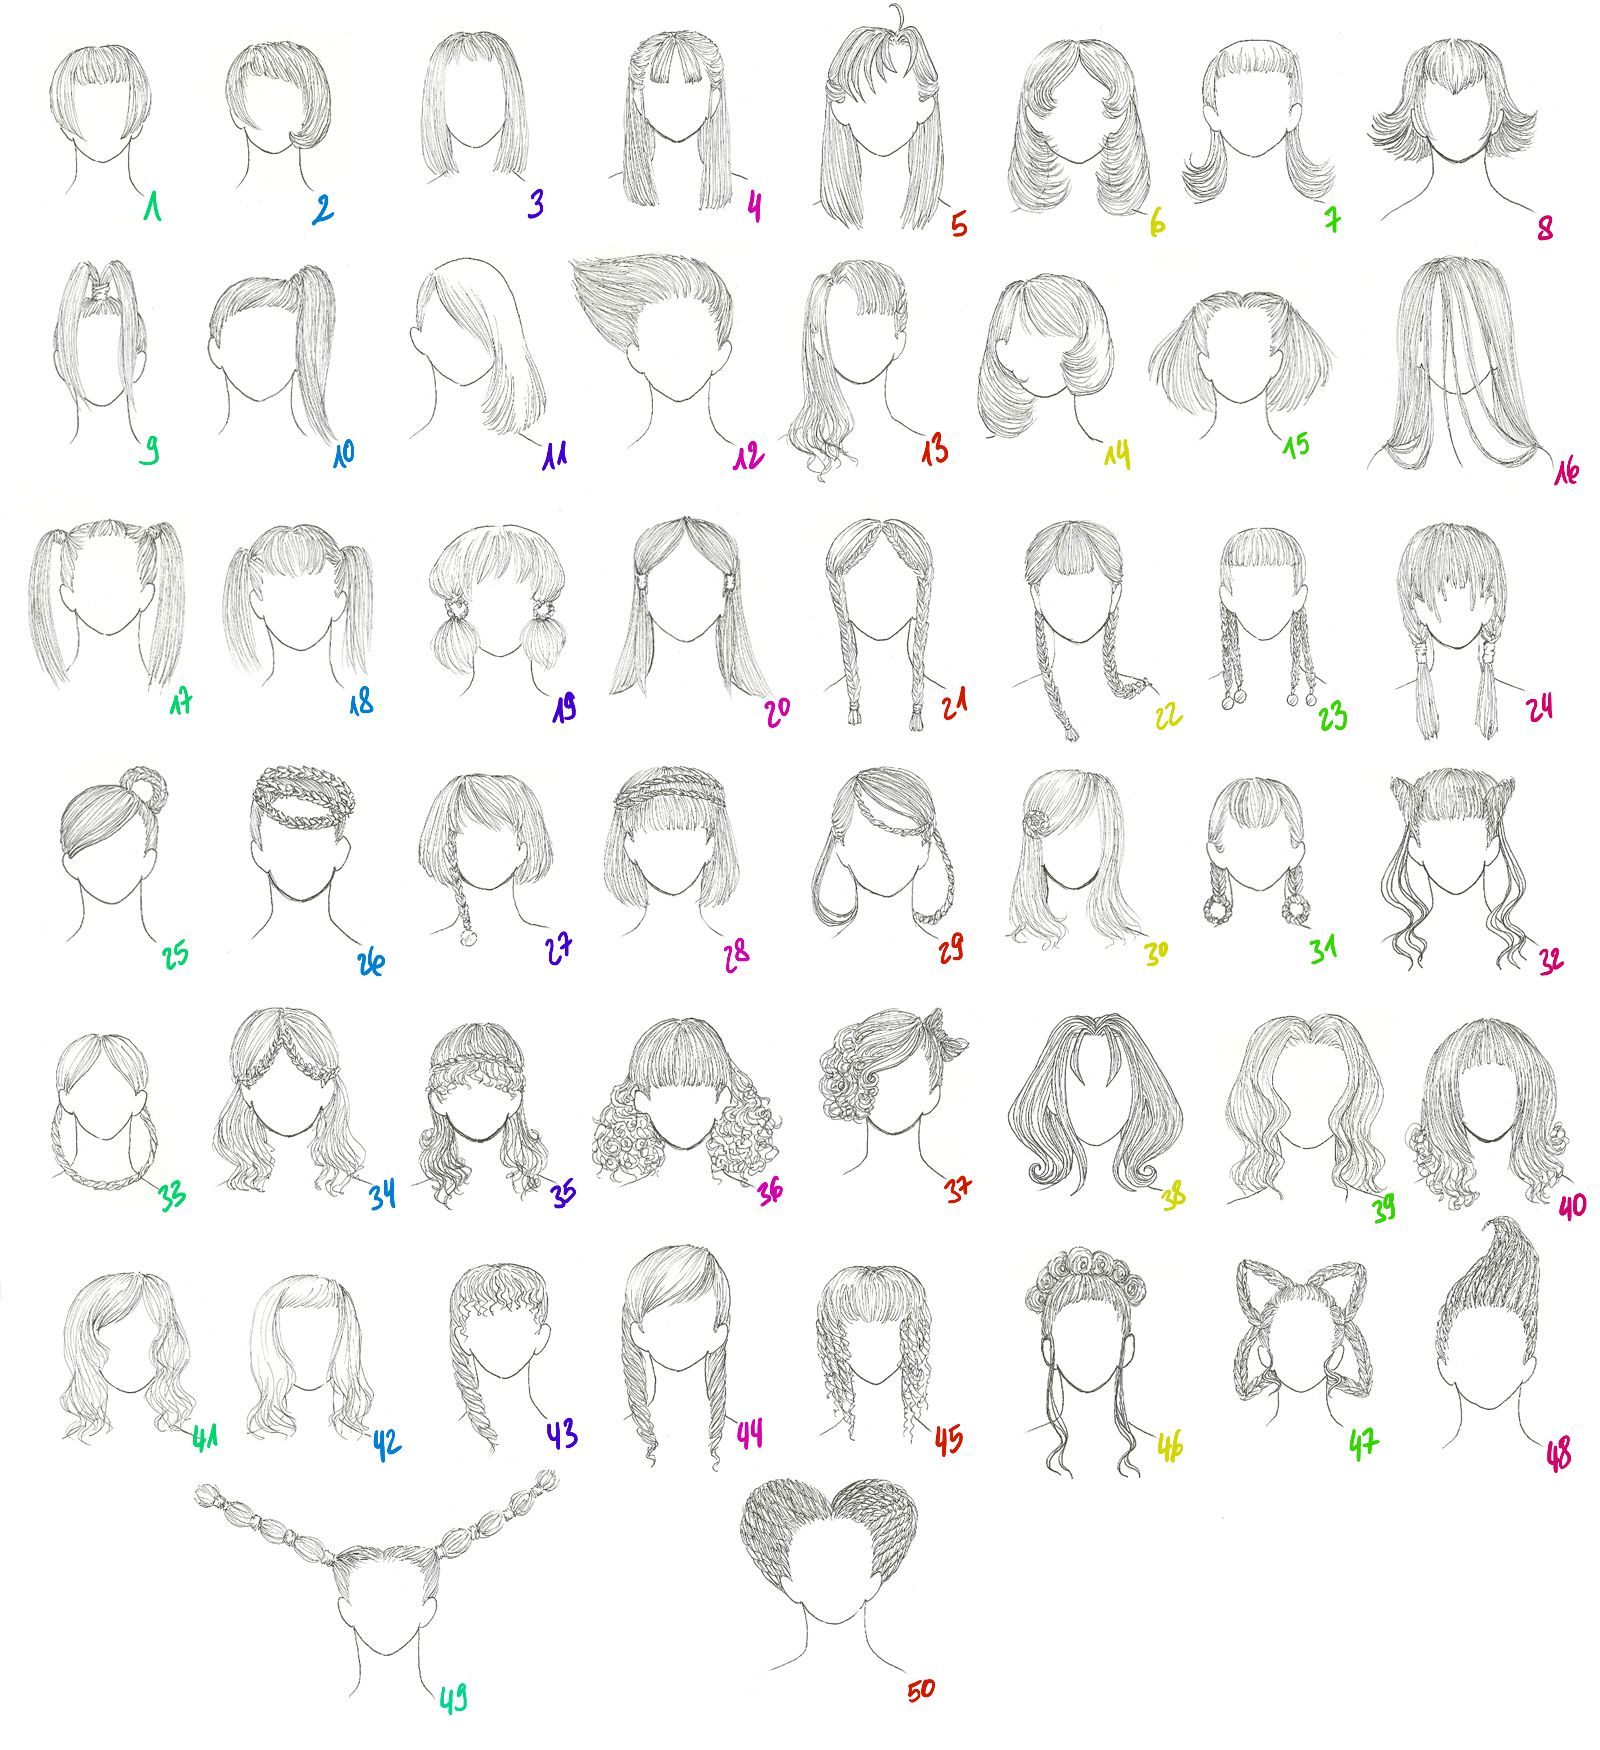 50 Female Anime Hairstyles By Anaiskalinin On Deviantart Female Anime Hairstyles Manga Hair Anime Hair